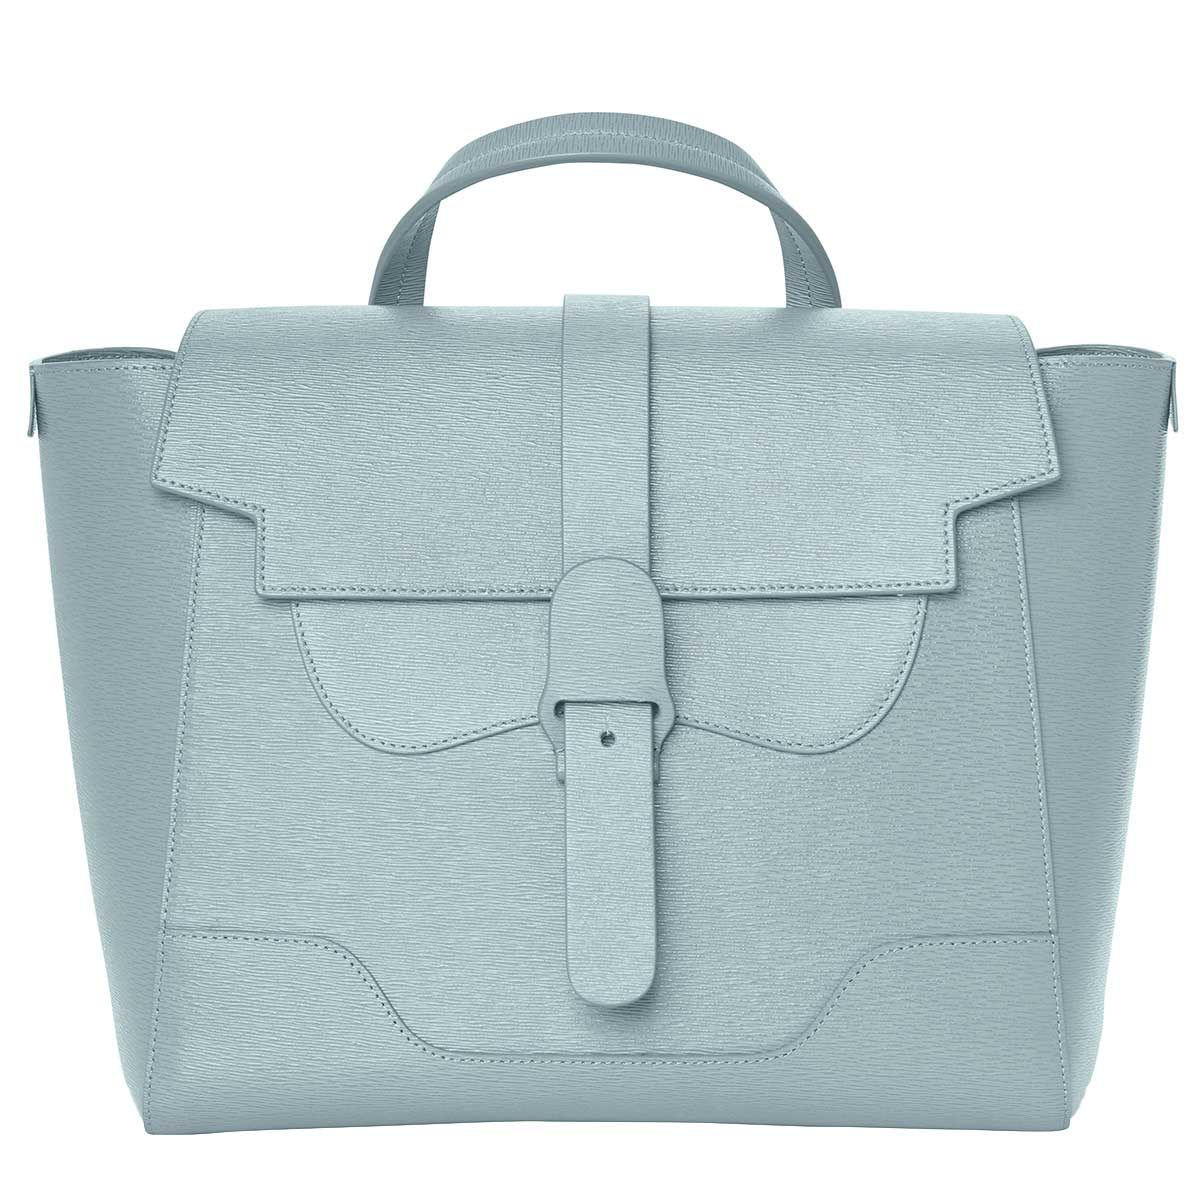 Maestra Bag in Mimosa Spearmint